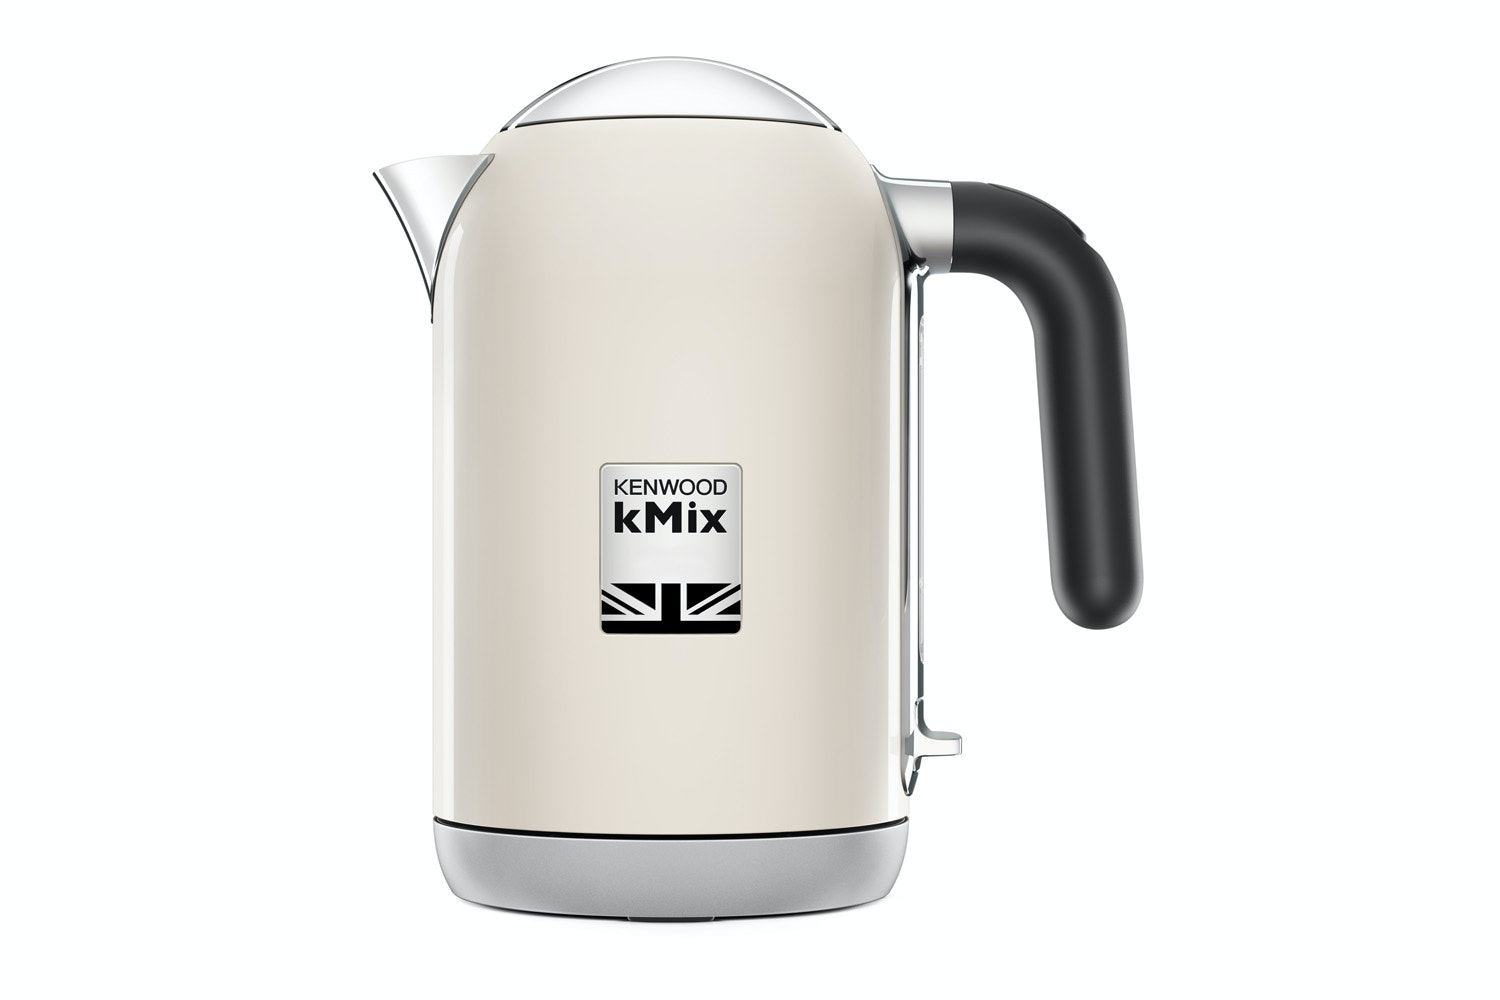 Kenwood Kmix 1.7L Kettle | ZJX750CR | Cream